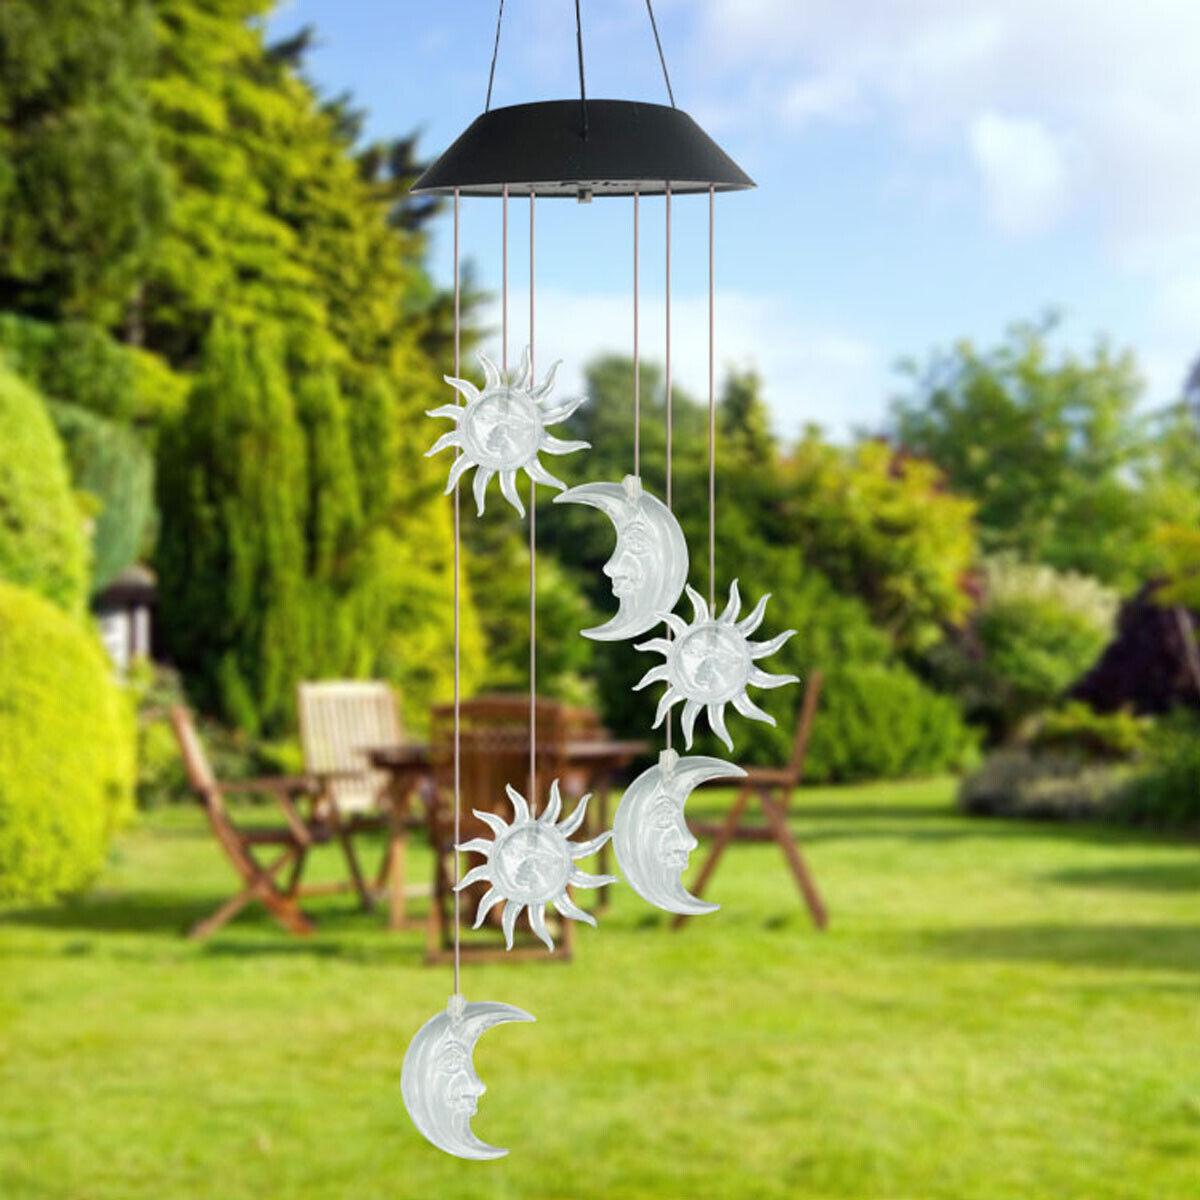 Color-Changing Outdoor LED Solar Sun and Moon Wind Chime Light Yard Garden Decor 2